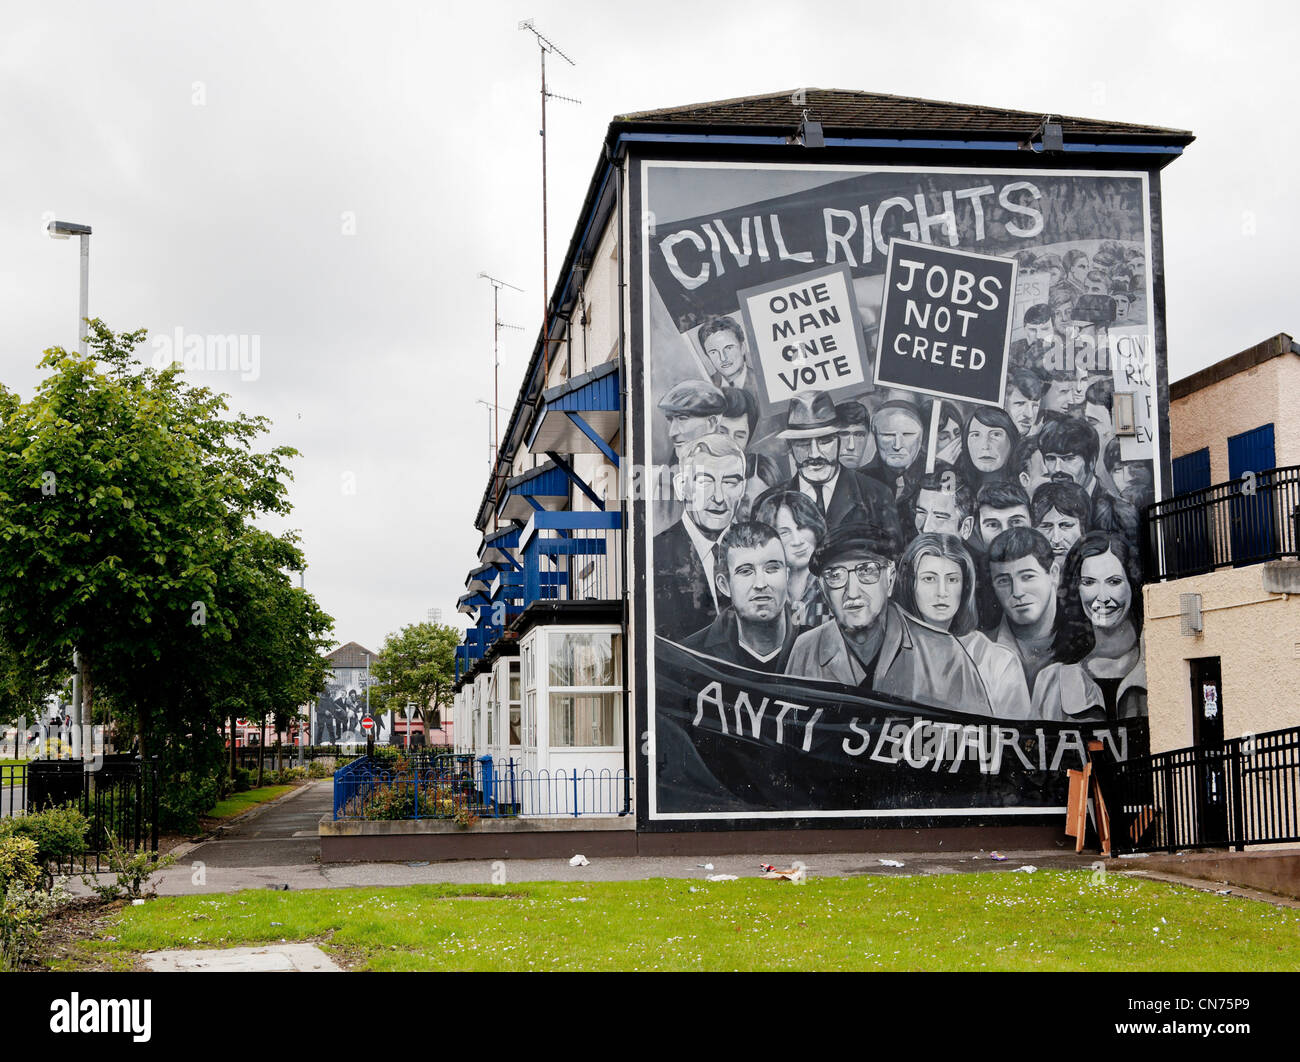 A mural in Derry depicting events during the Troubles in Northern Ireland - Stock Image